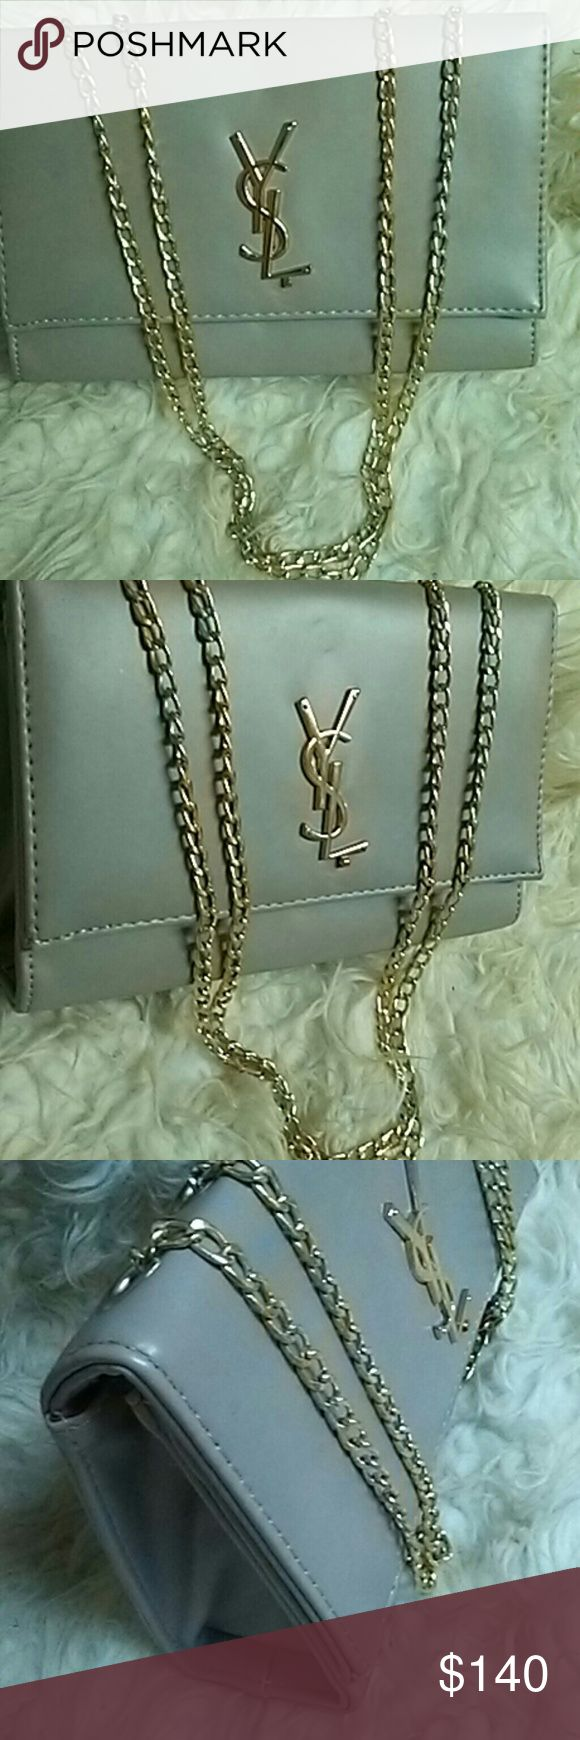 Flash sale Ysl bag 9/10 condition leather fashion bag gold hardware.. Open to all offers Yves Saint Laurent Bags